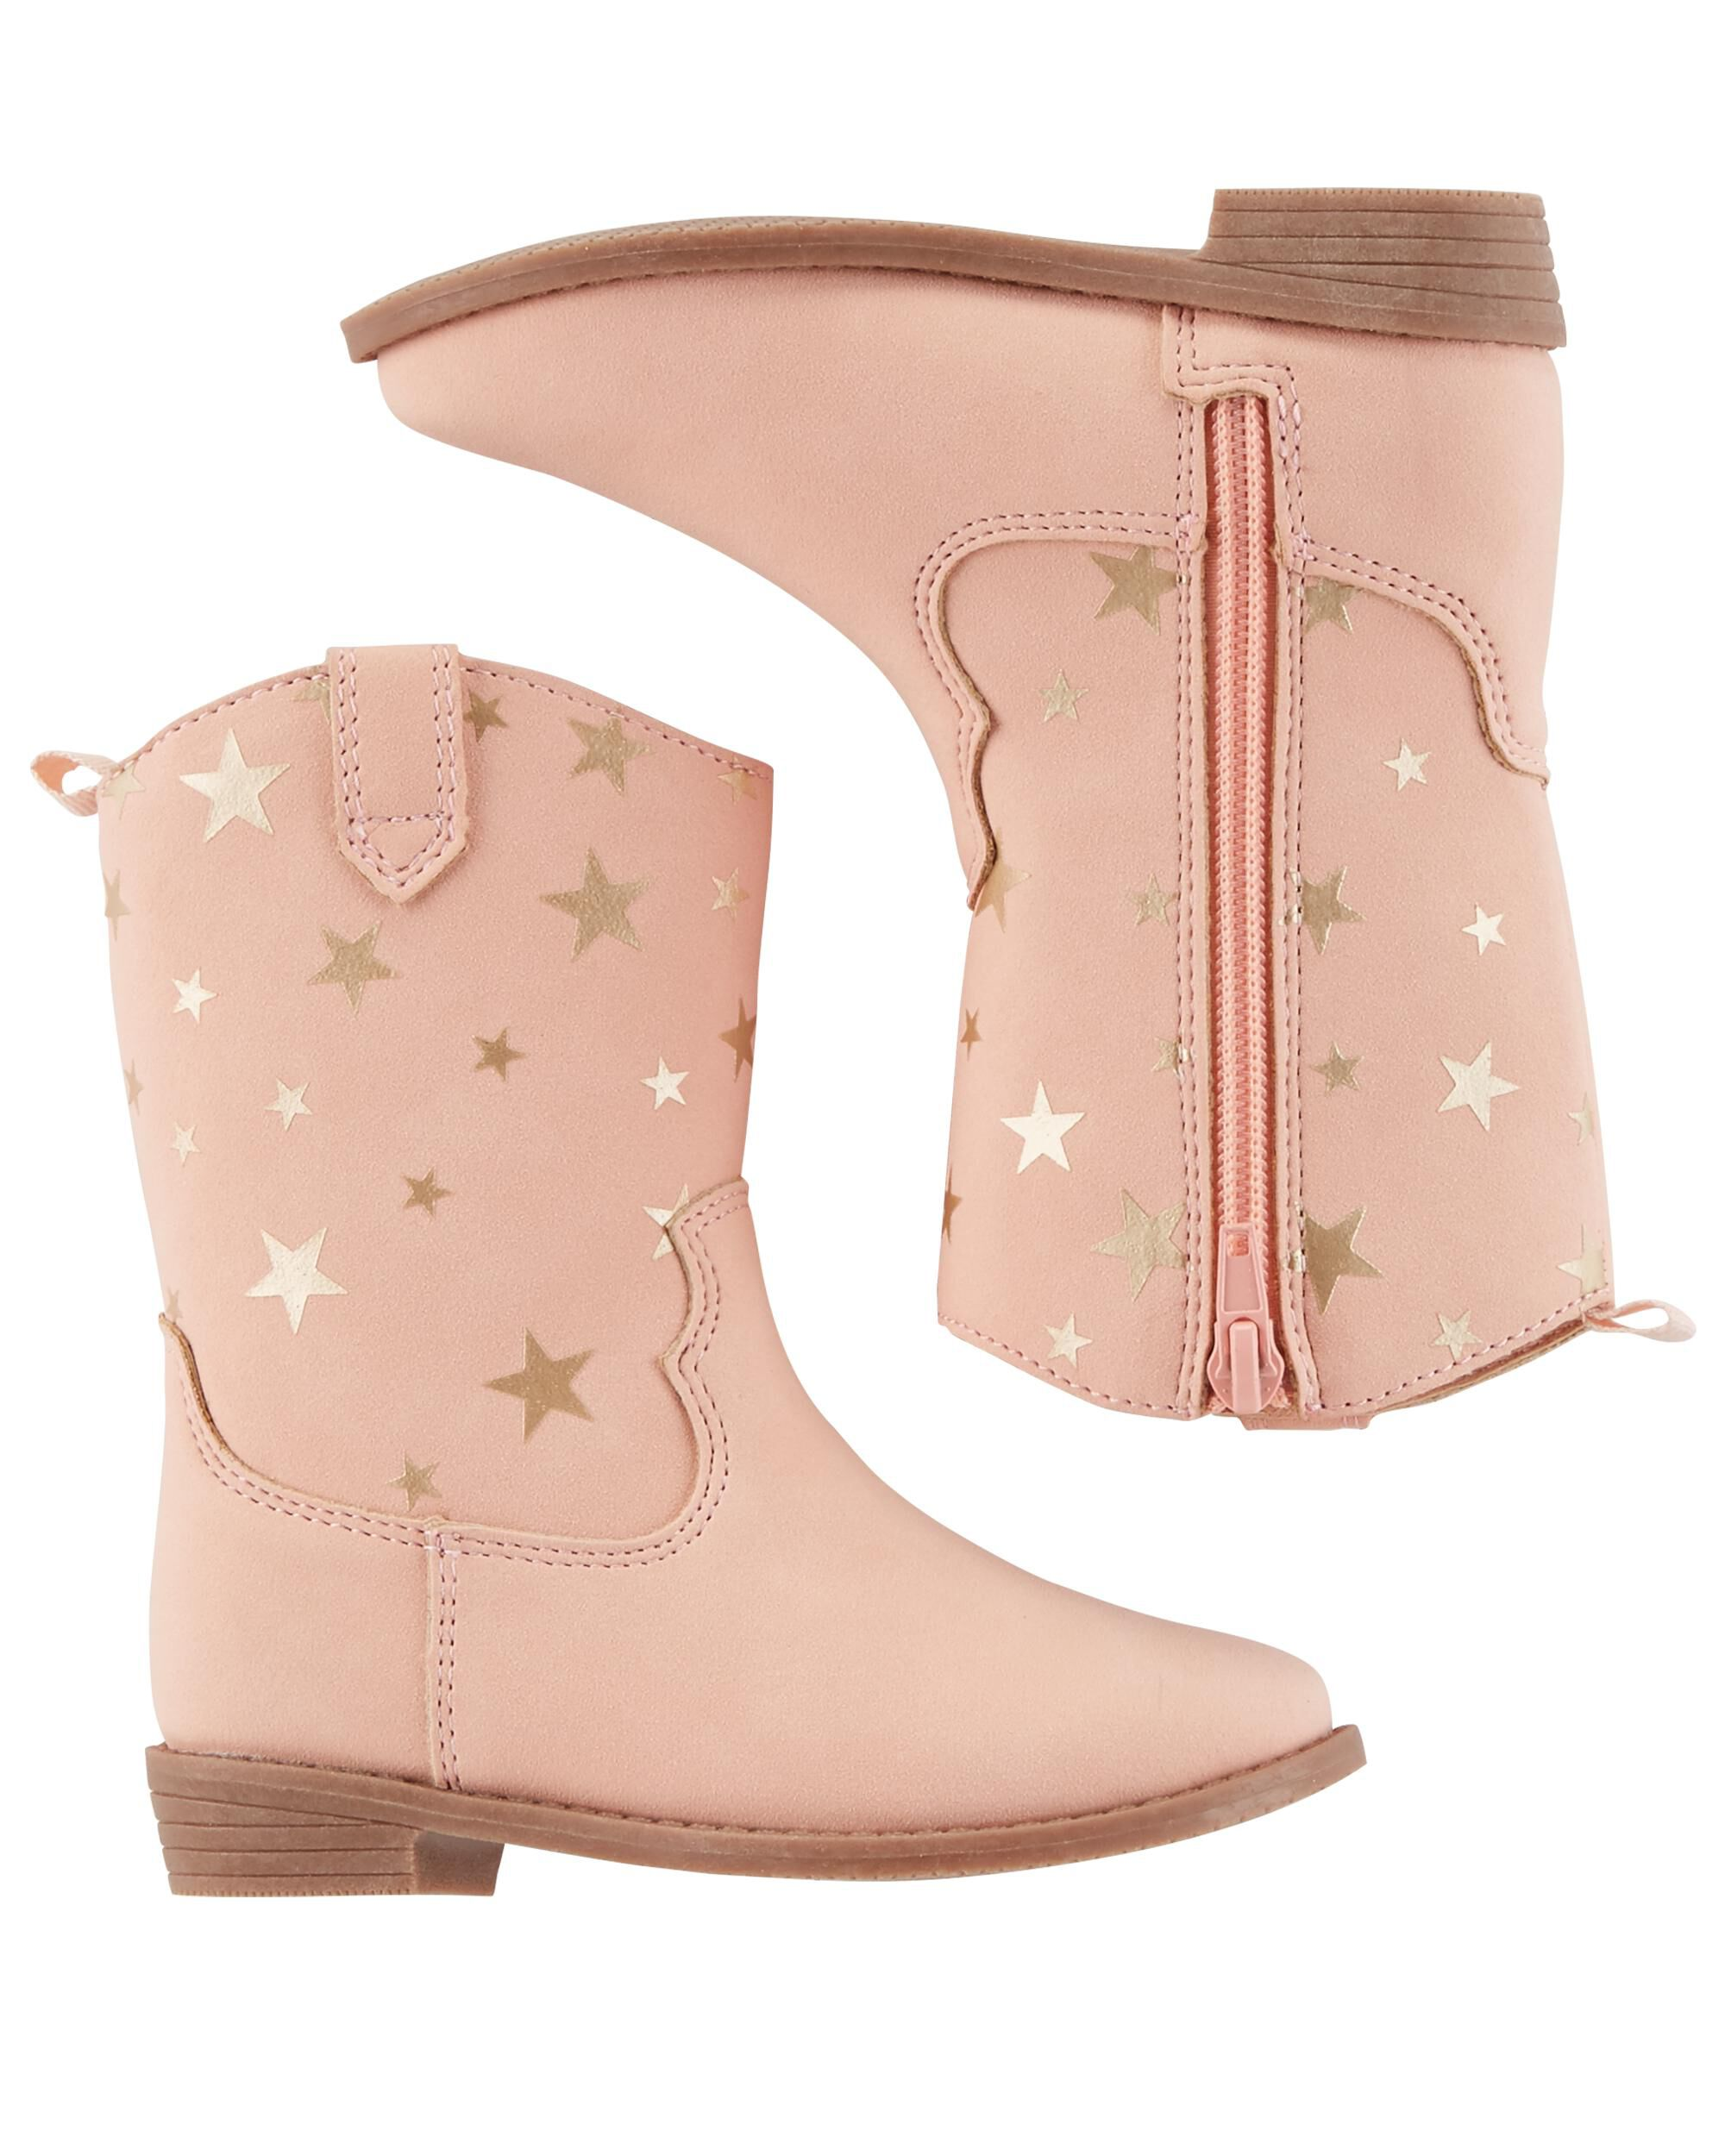 Carter's Star Cowgirl Boots | carters.com